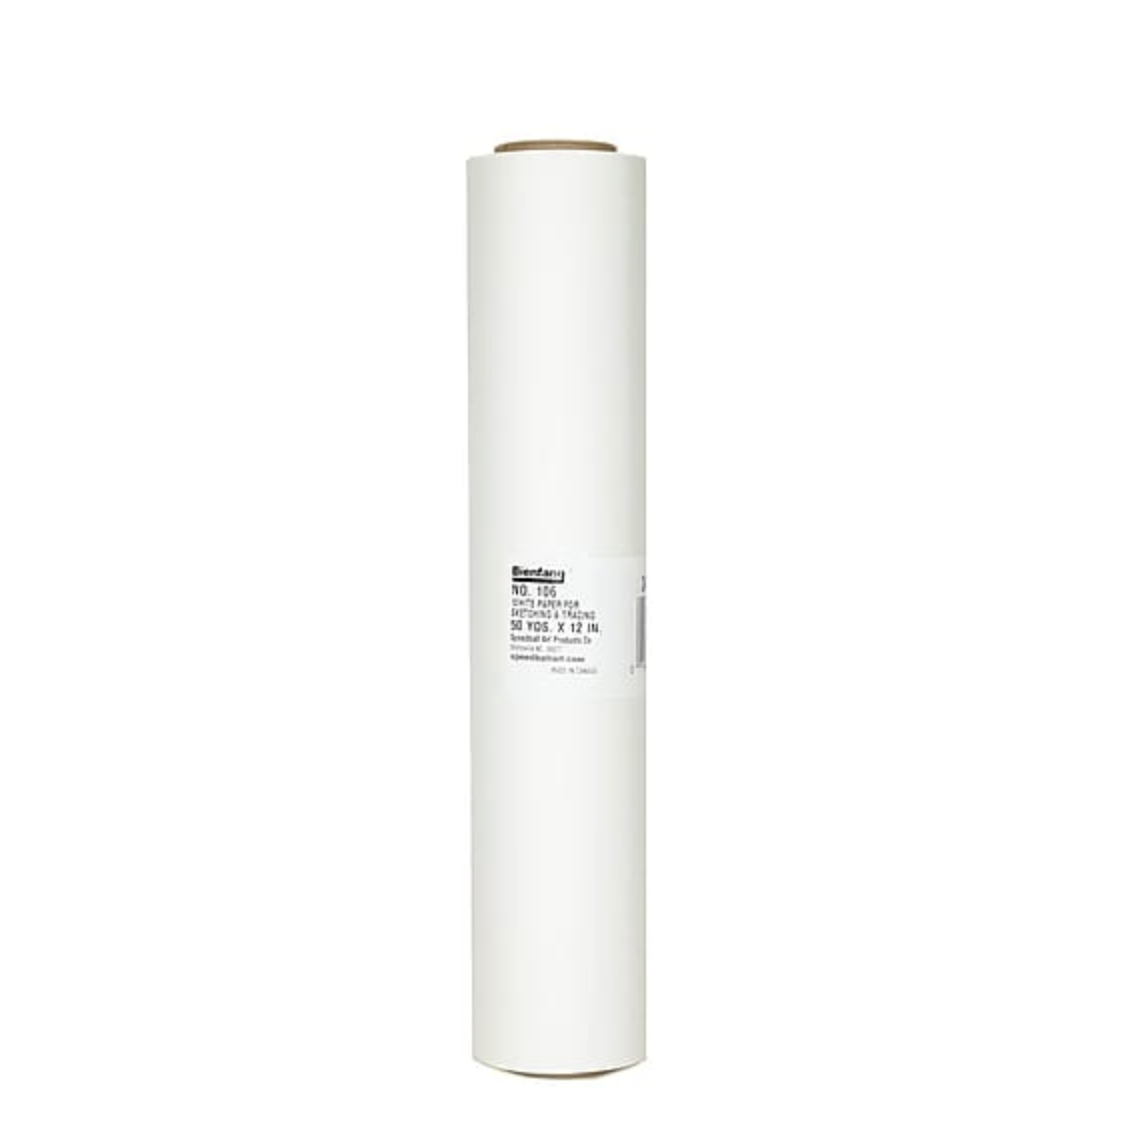 Bienfang (106) White Sketching and Tracing Paper Roll - Small / Medium